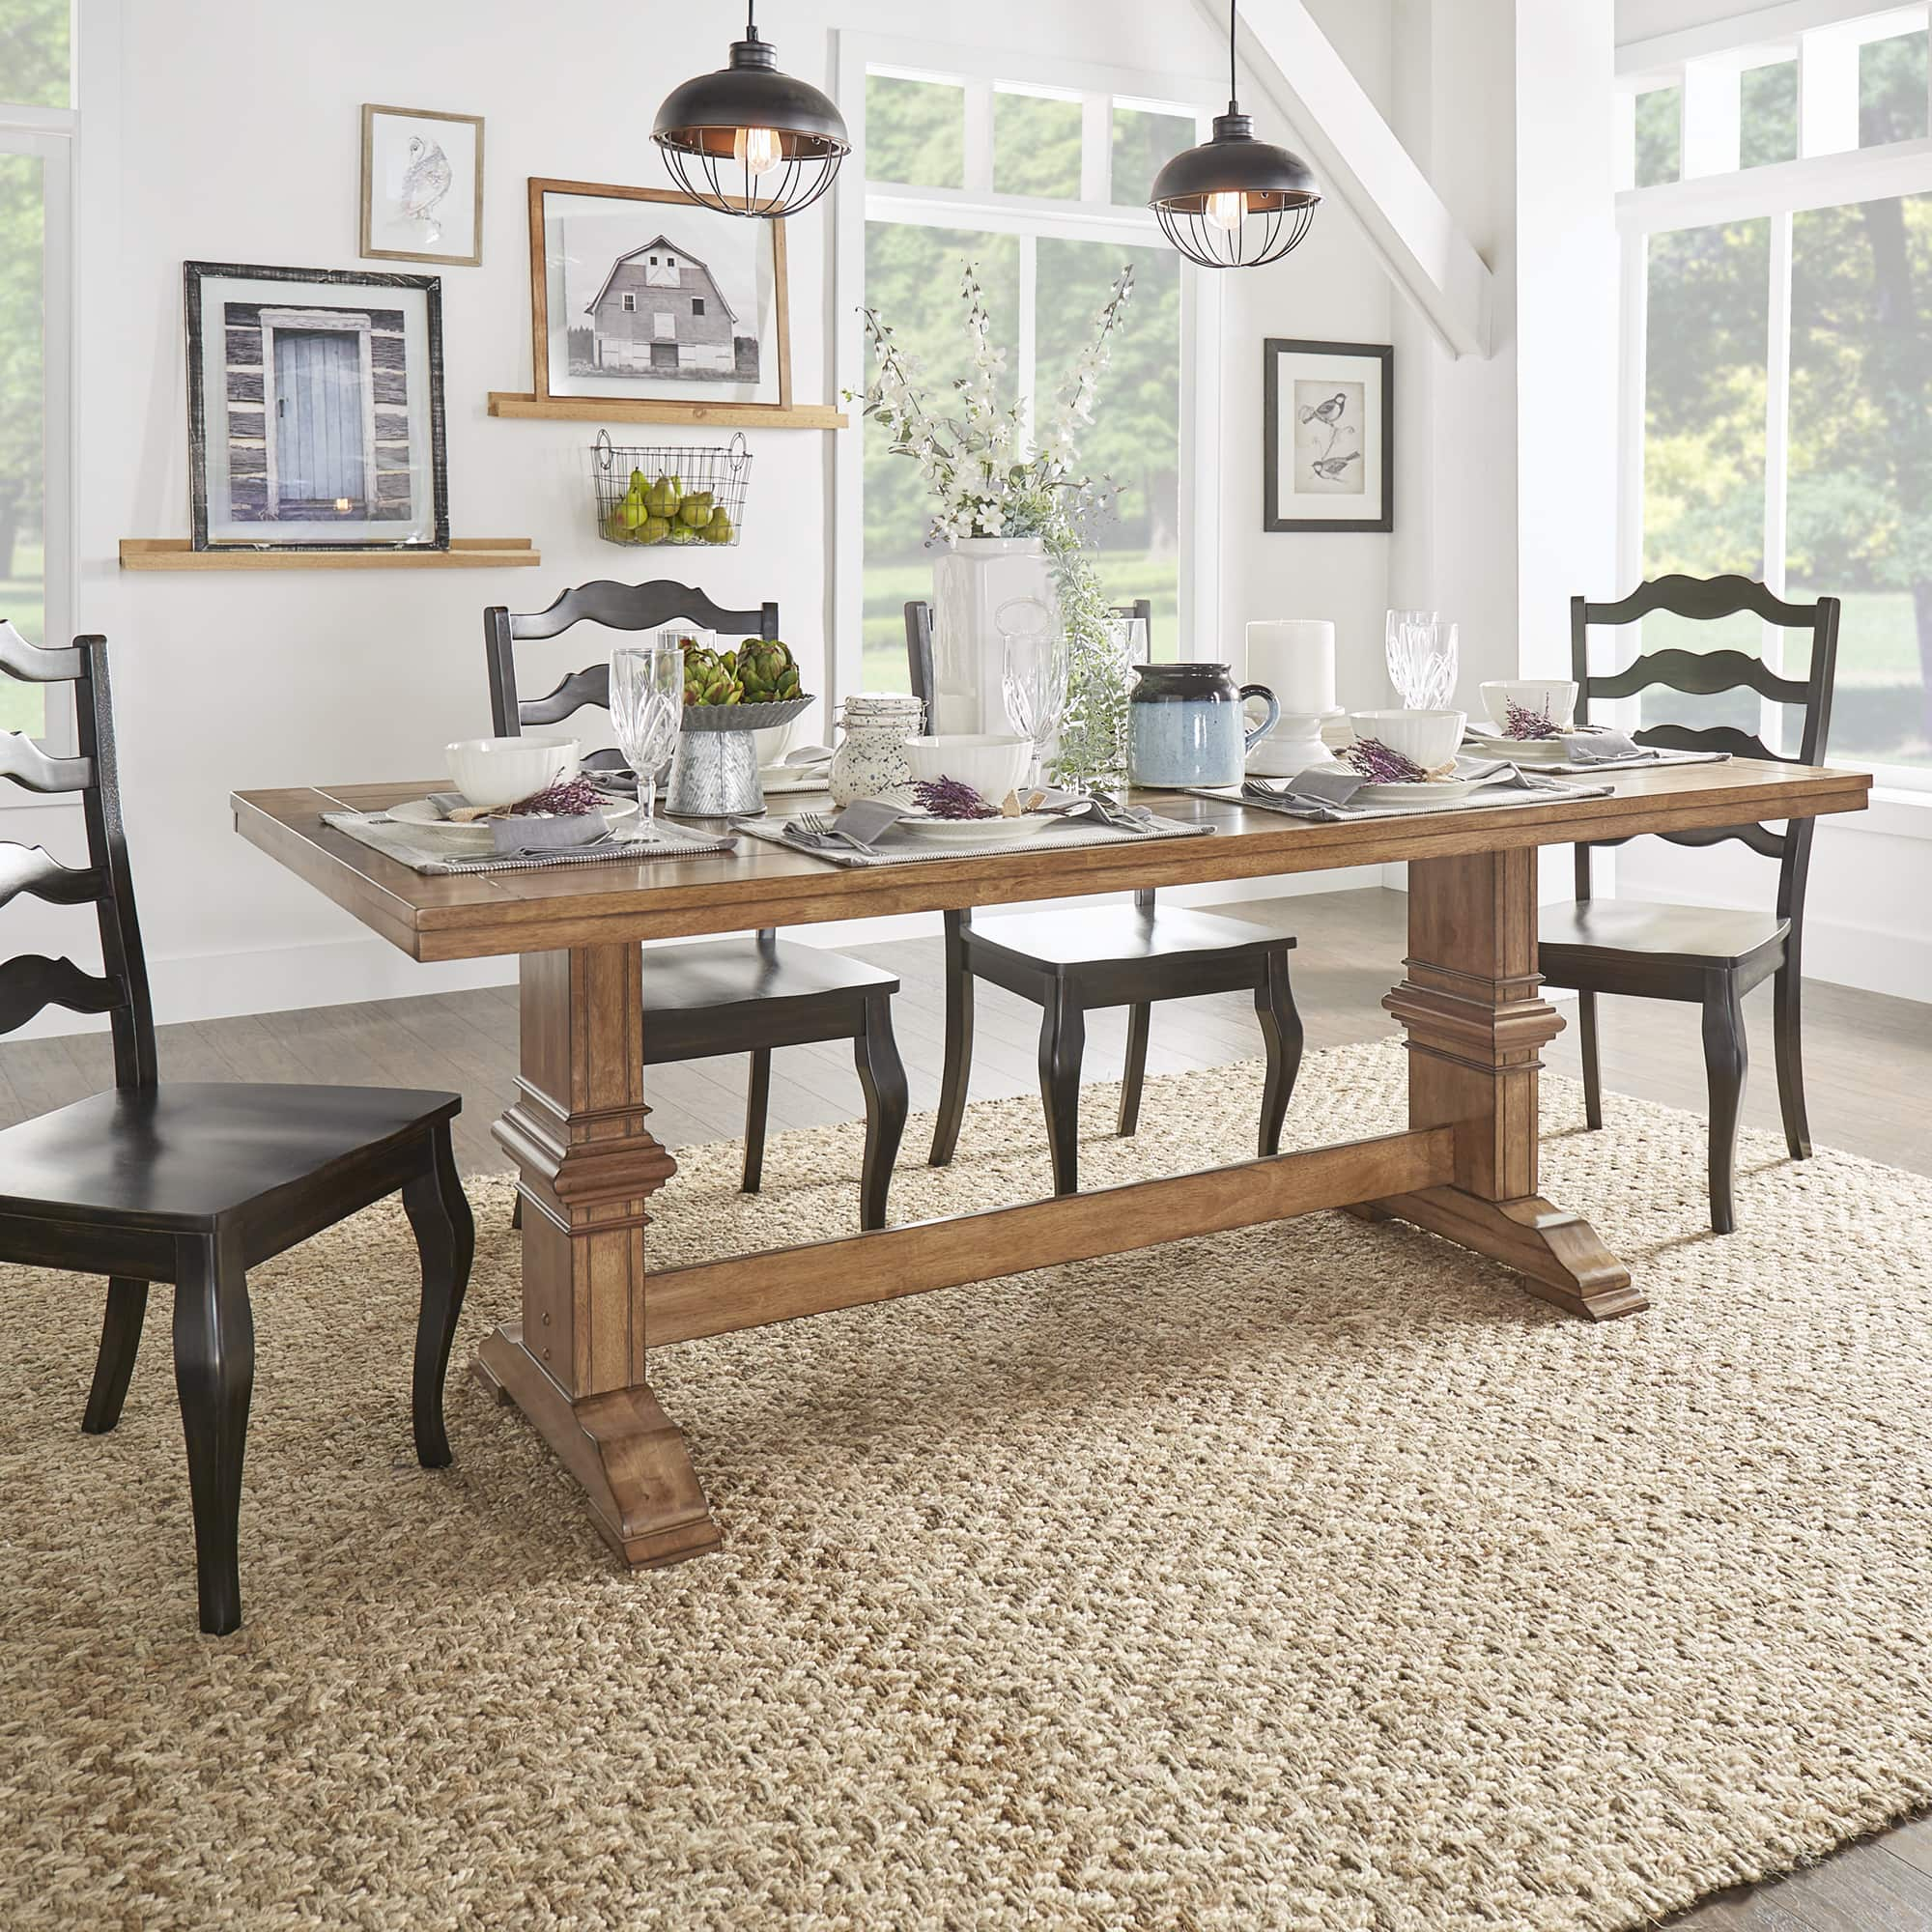 Kitchen dining room tables for less for Dining room tables home goods